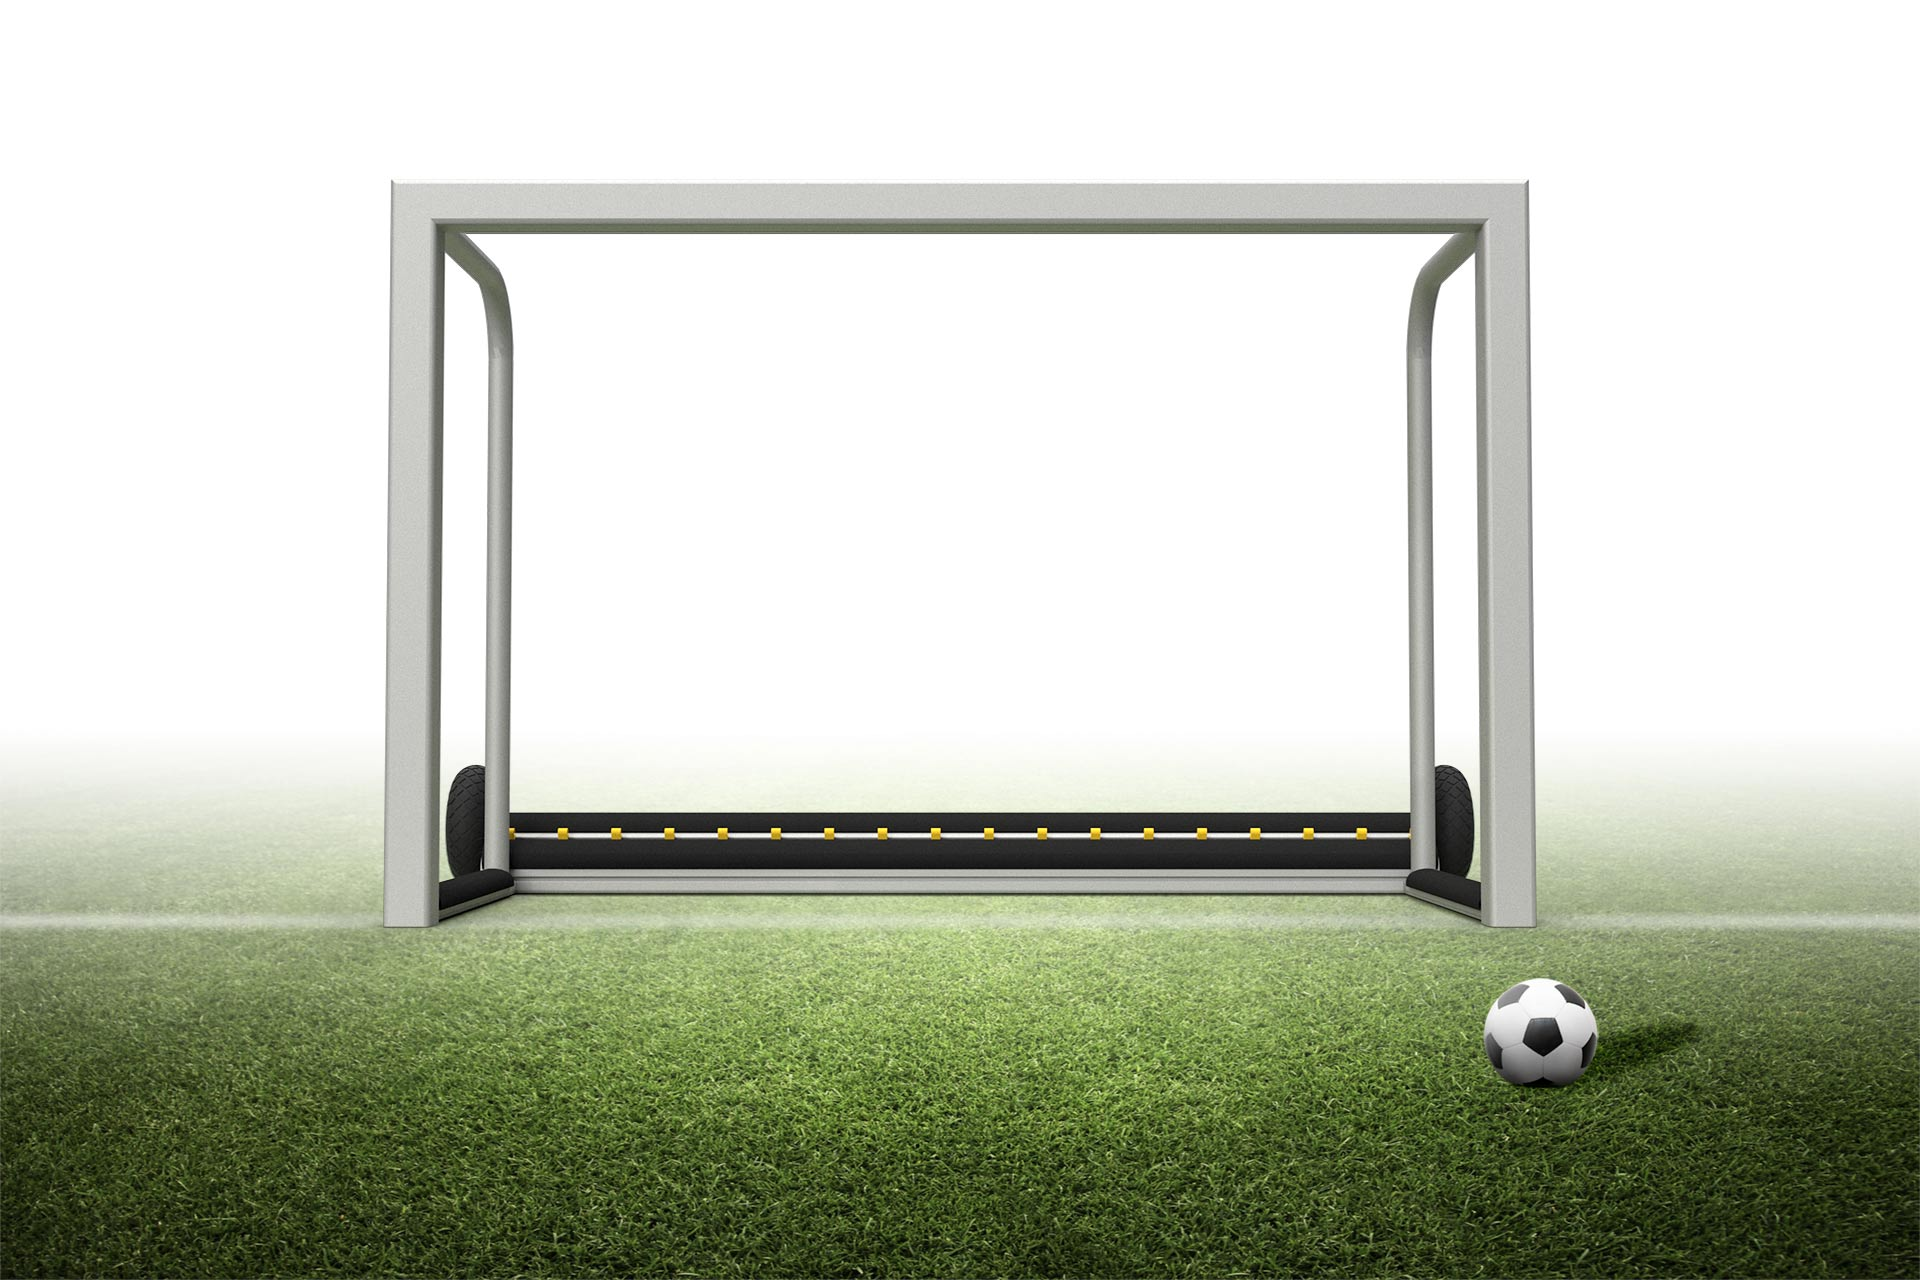 3.9'H x 5.9'W Portable Safety mini soccer goal with PlayersProtect®